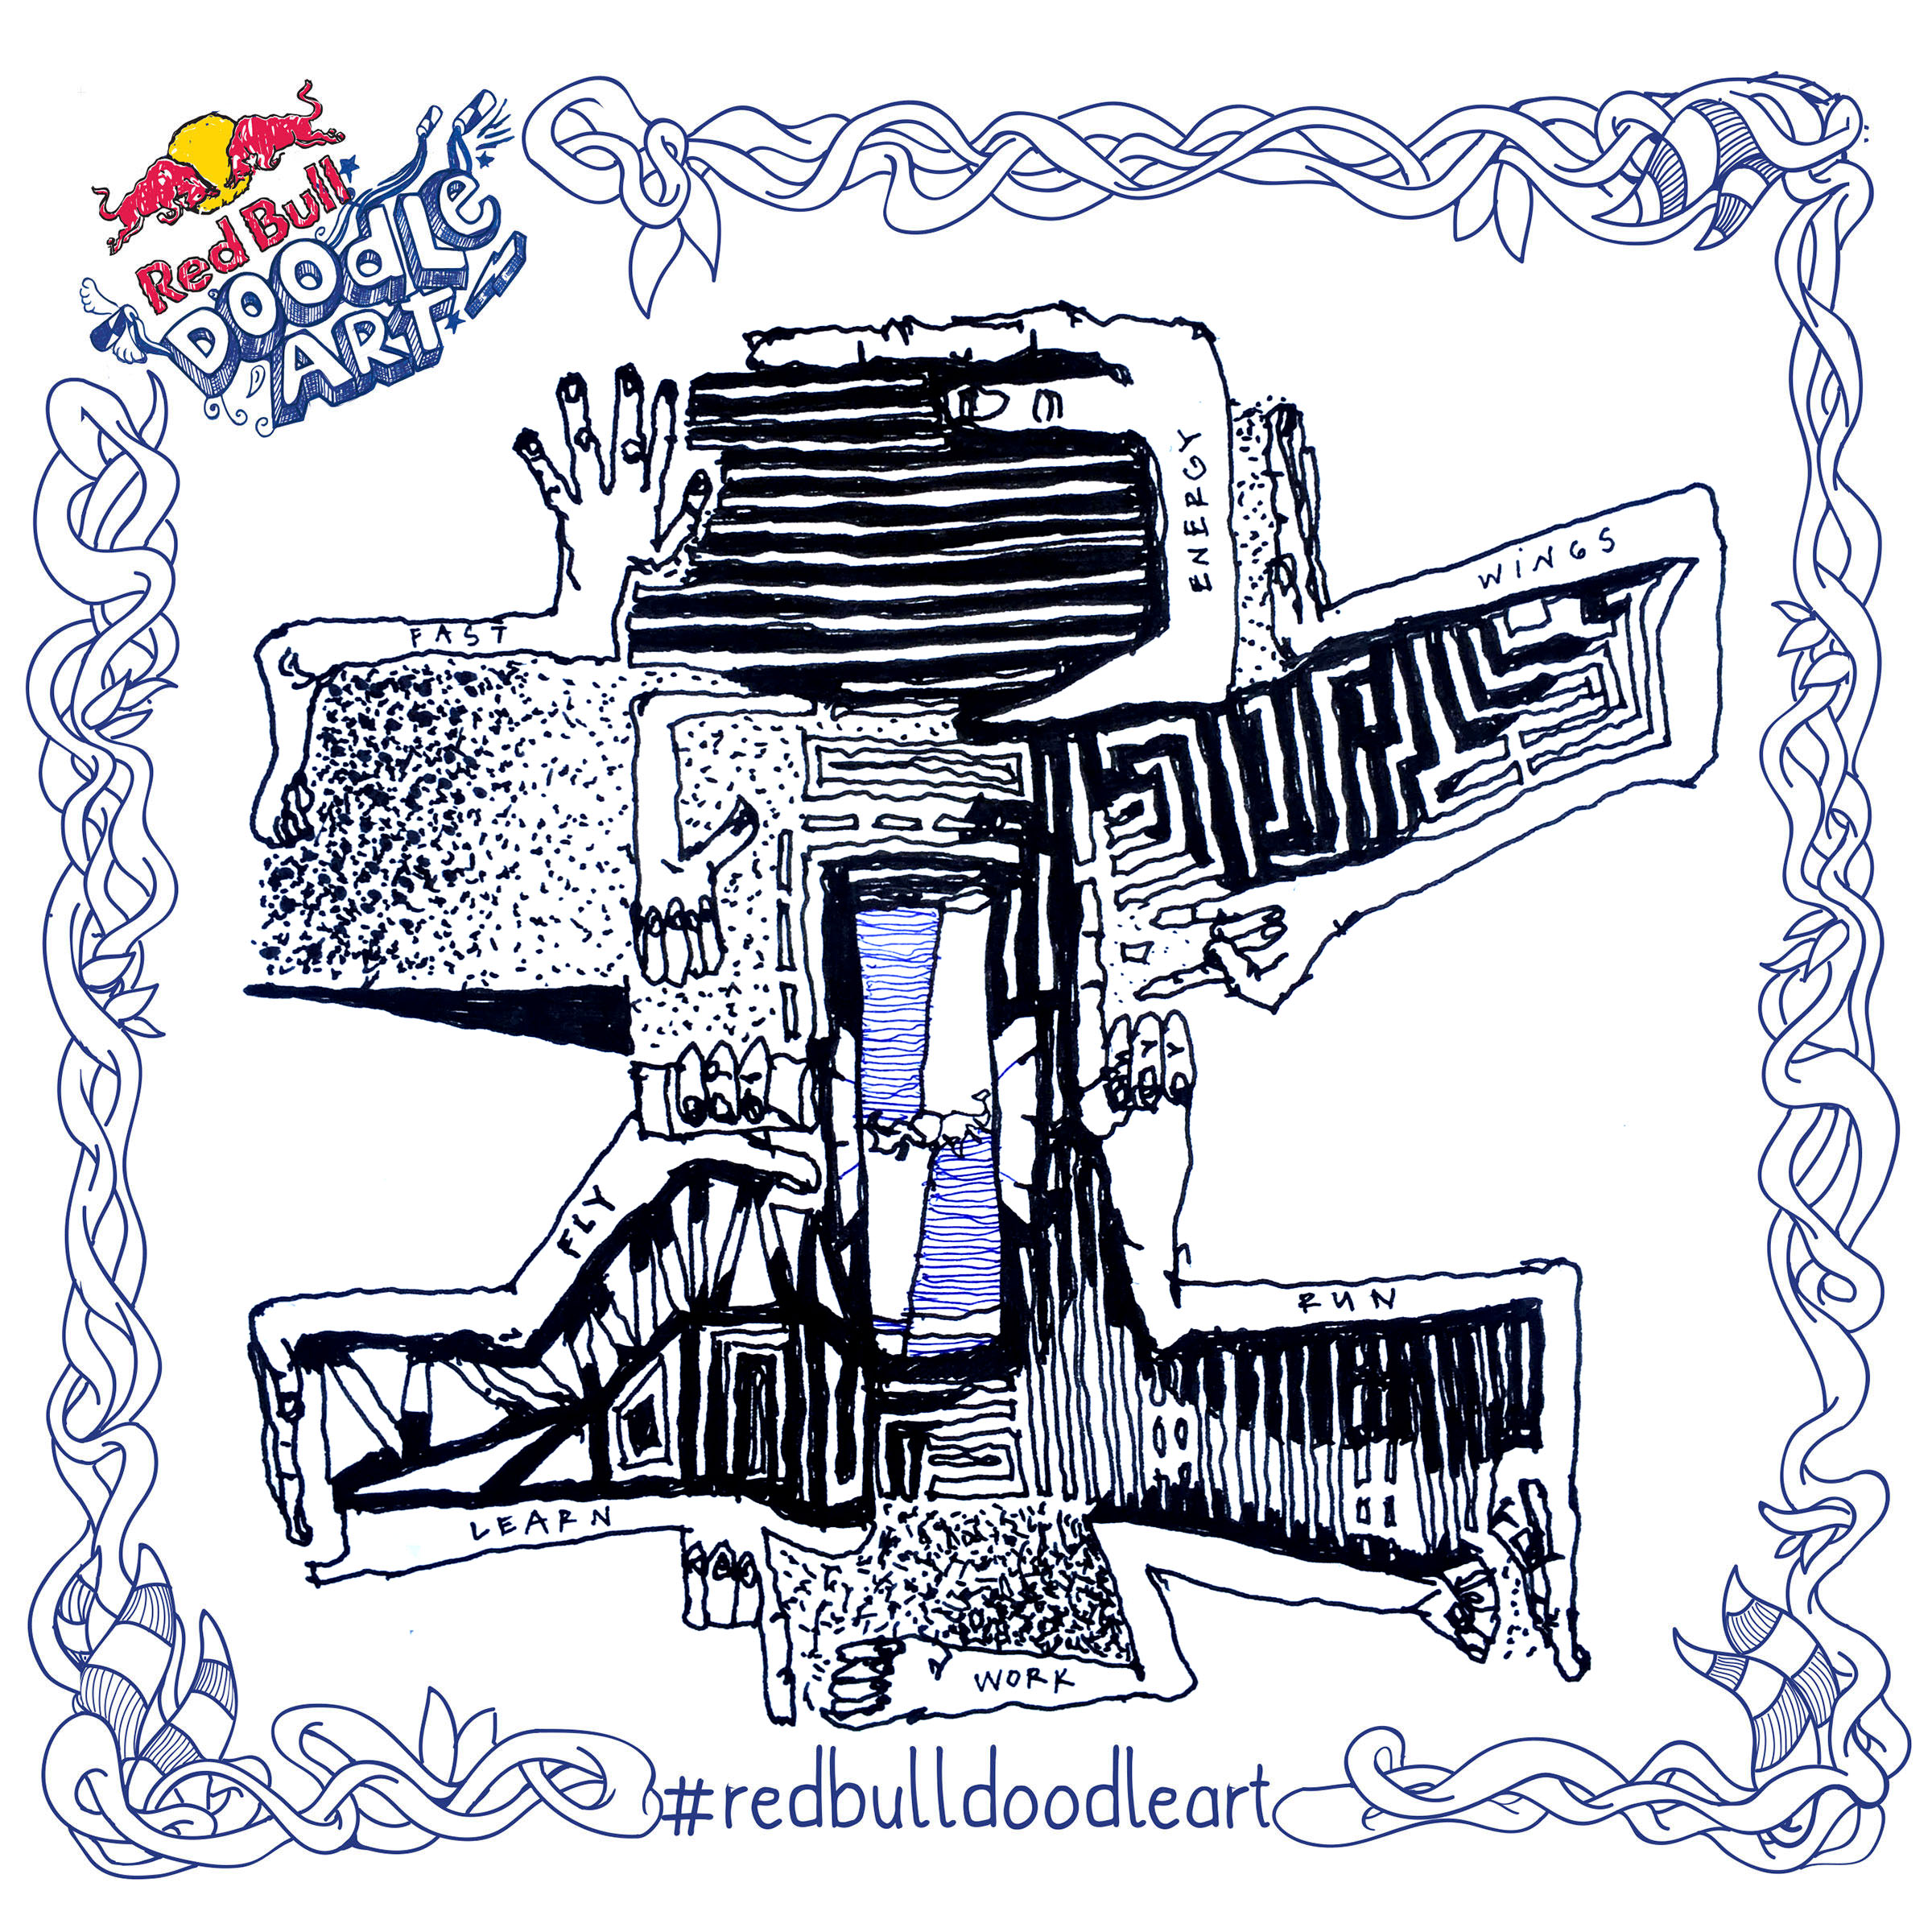 #redbulldoodleart – We got Wings